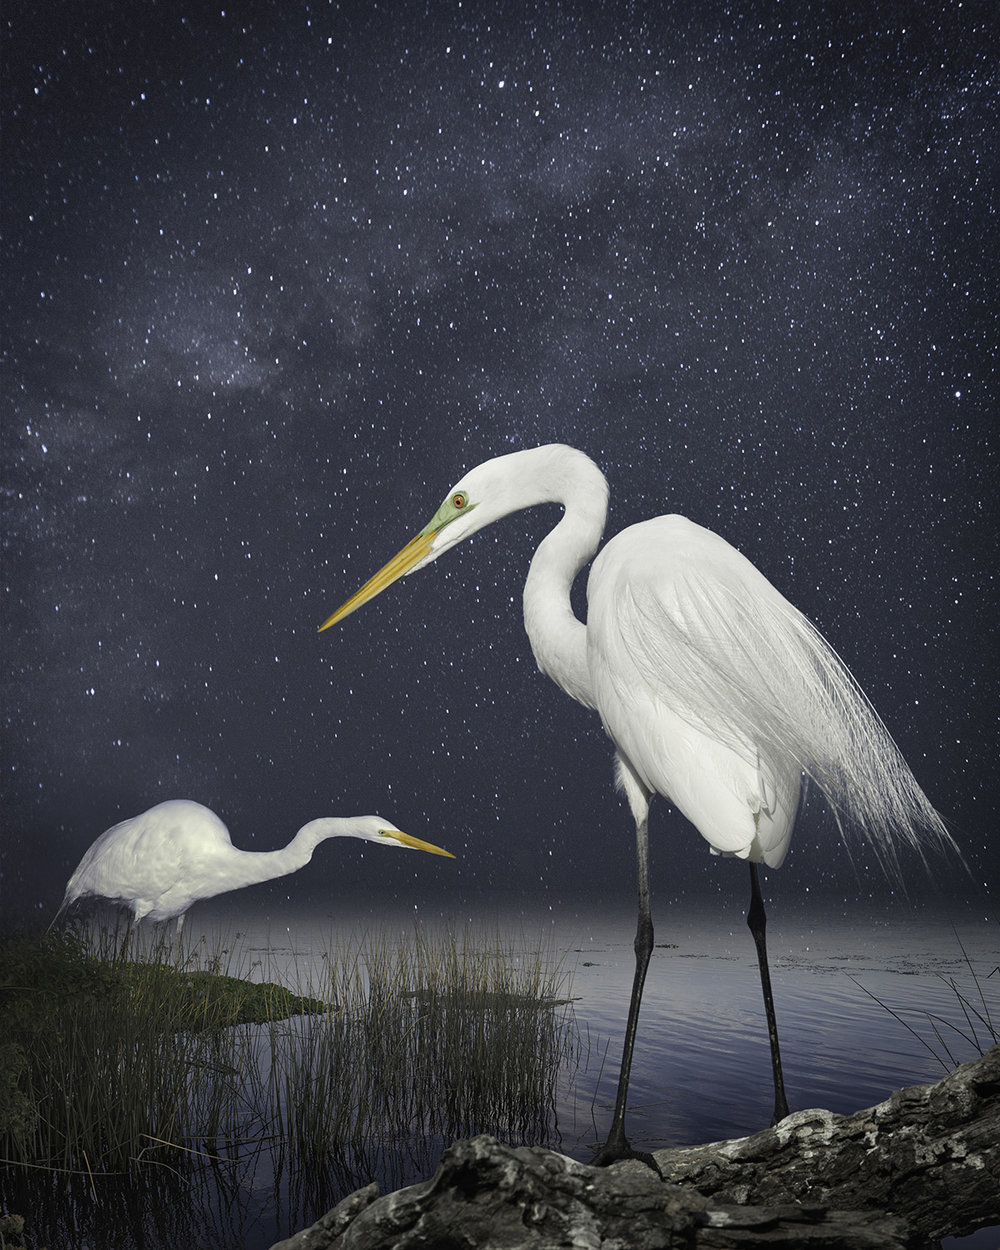 8. Great Egrets a starry night